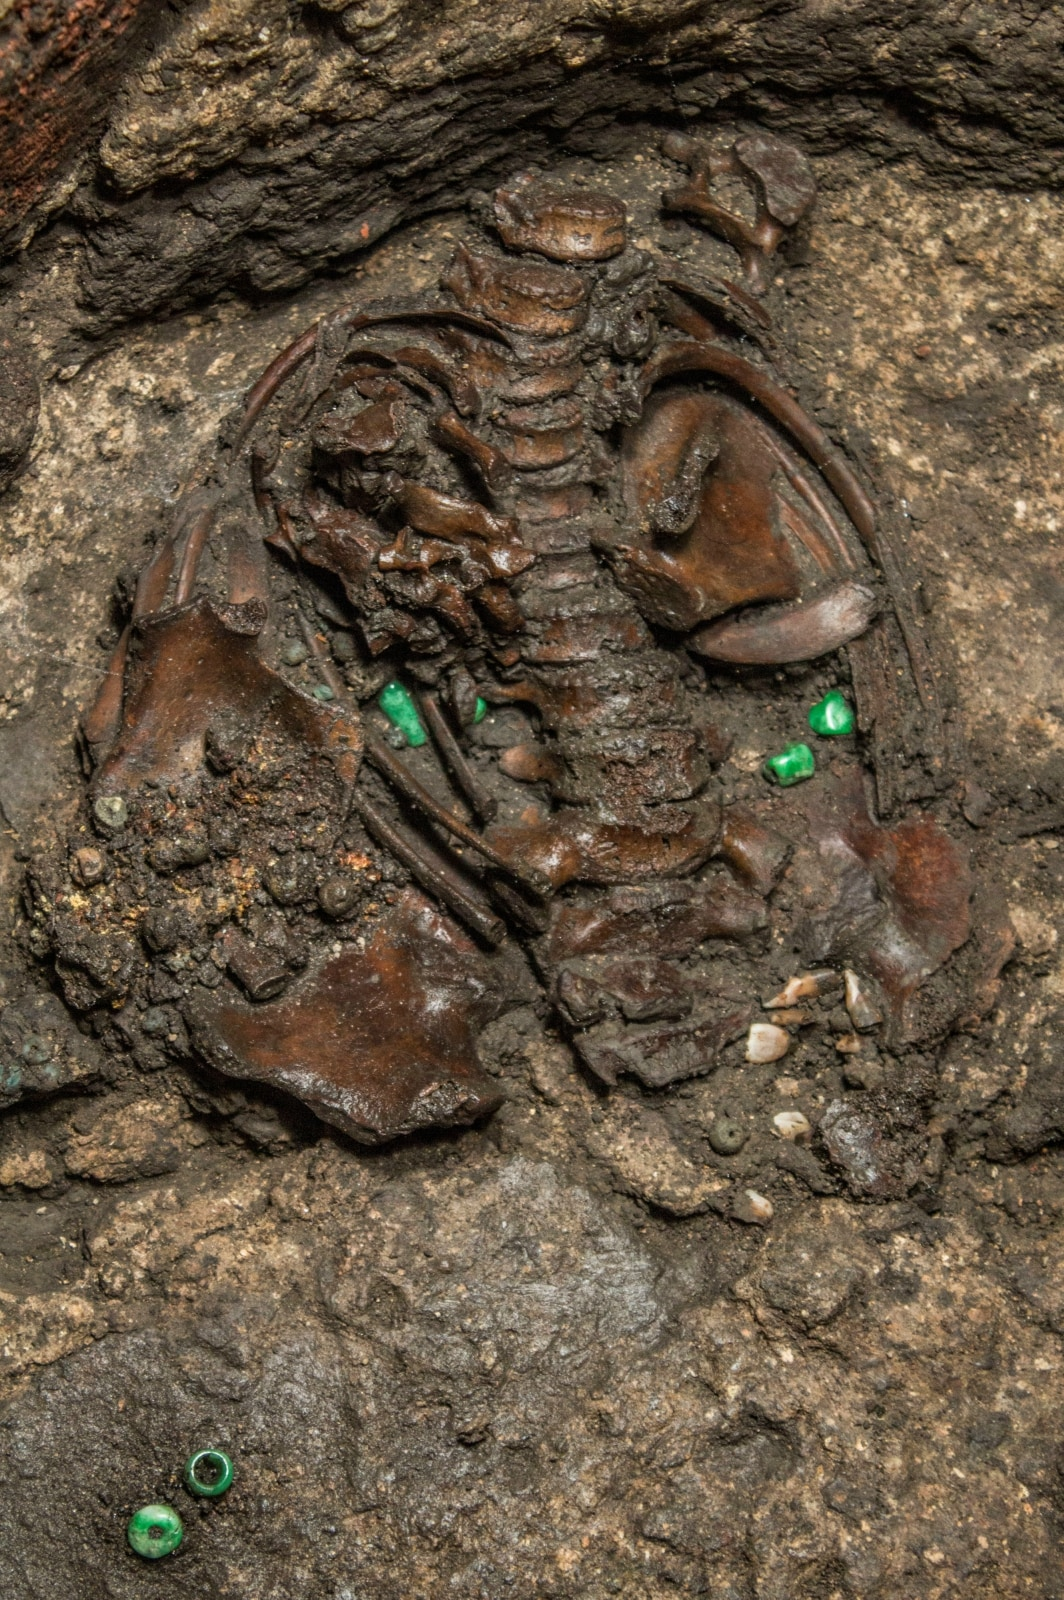 The 500-year-old interior of a circular stone offering shows the bones of a sacrificed young boy dressed as a warrior and dedicated to the Aztec war god Huitzilopochtli, in Mexico City, Mexico in this handout photograph released March 15, 2019 to Reuters by Courtesy of the Templo Mayor Project of the National Institute of Anthropology and History (INAH)/Mirsa Islas/Handout via REUTERS